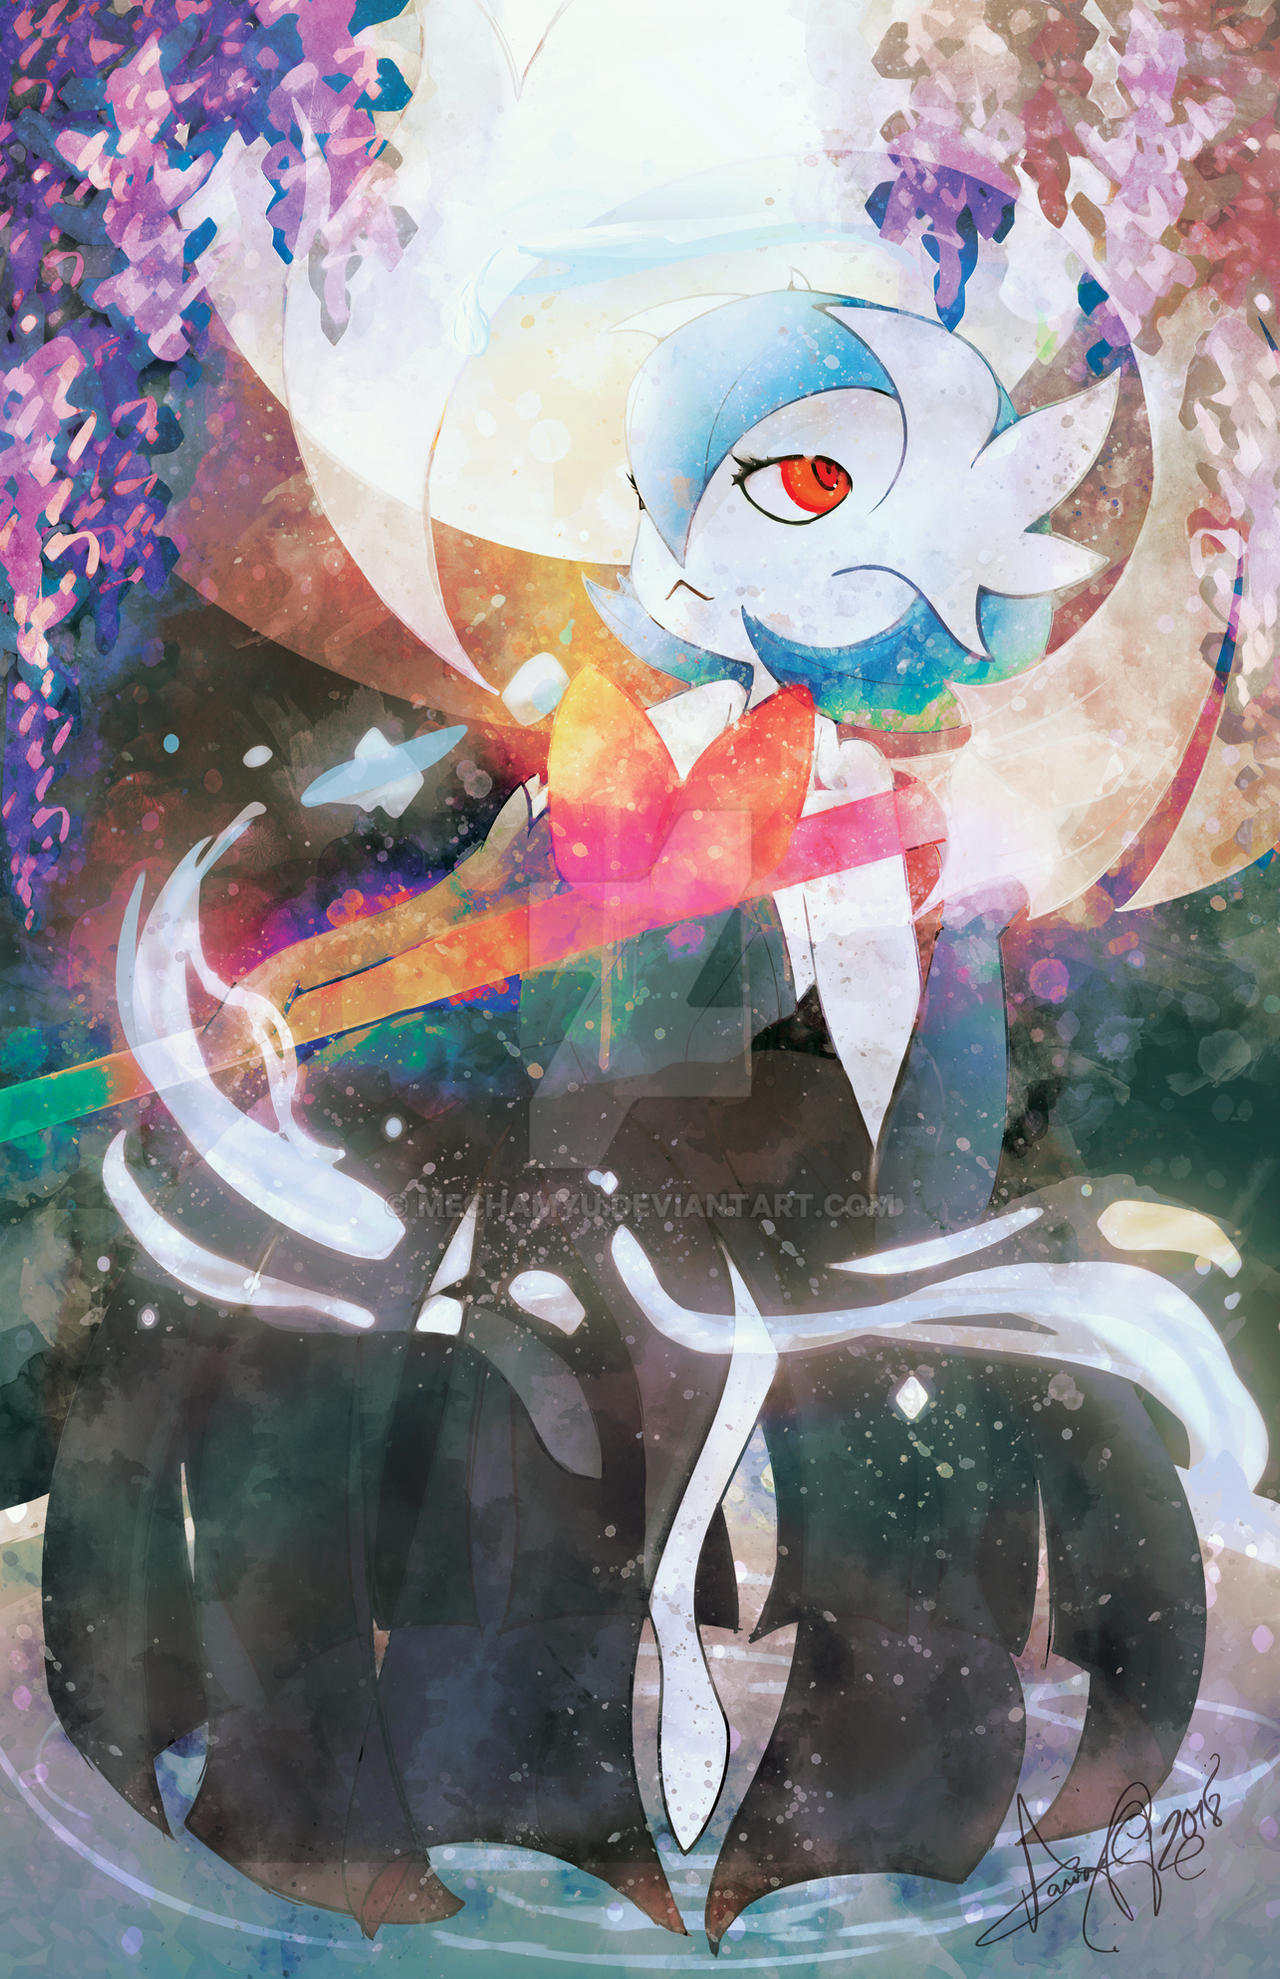 Shiny Mega Gardevoir [Commission]